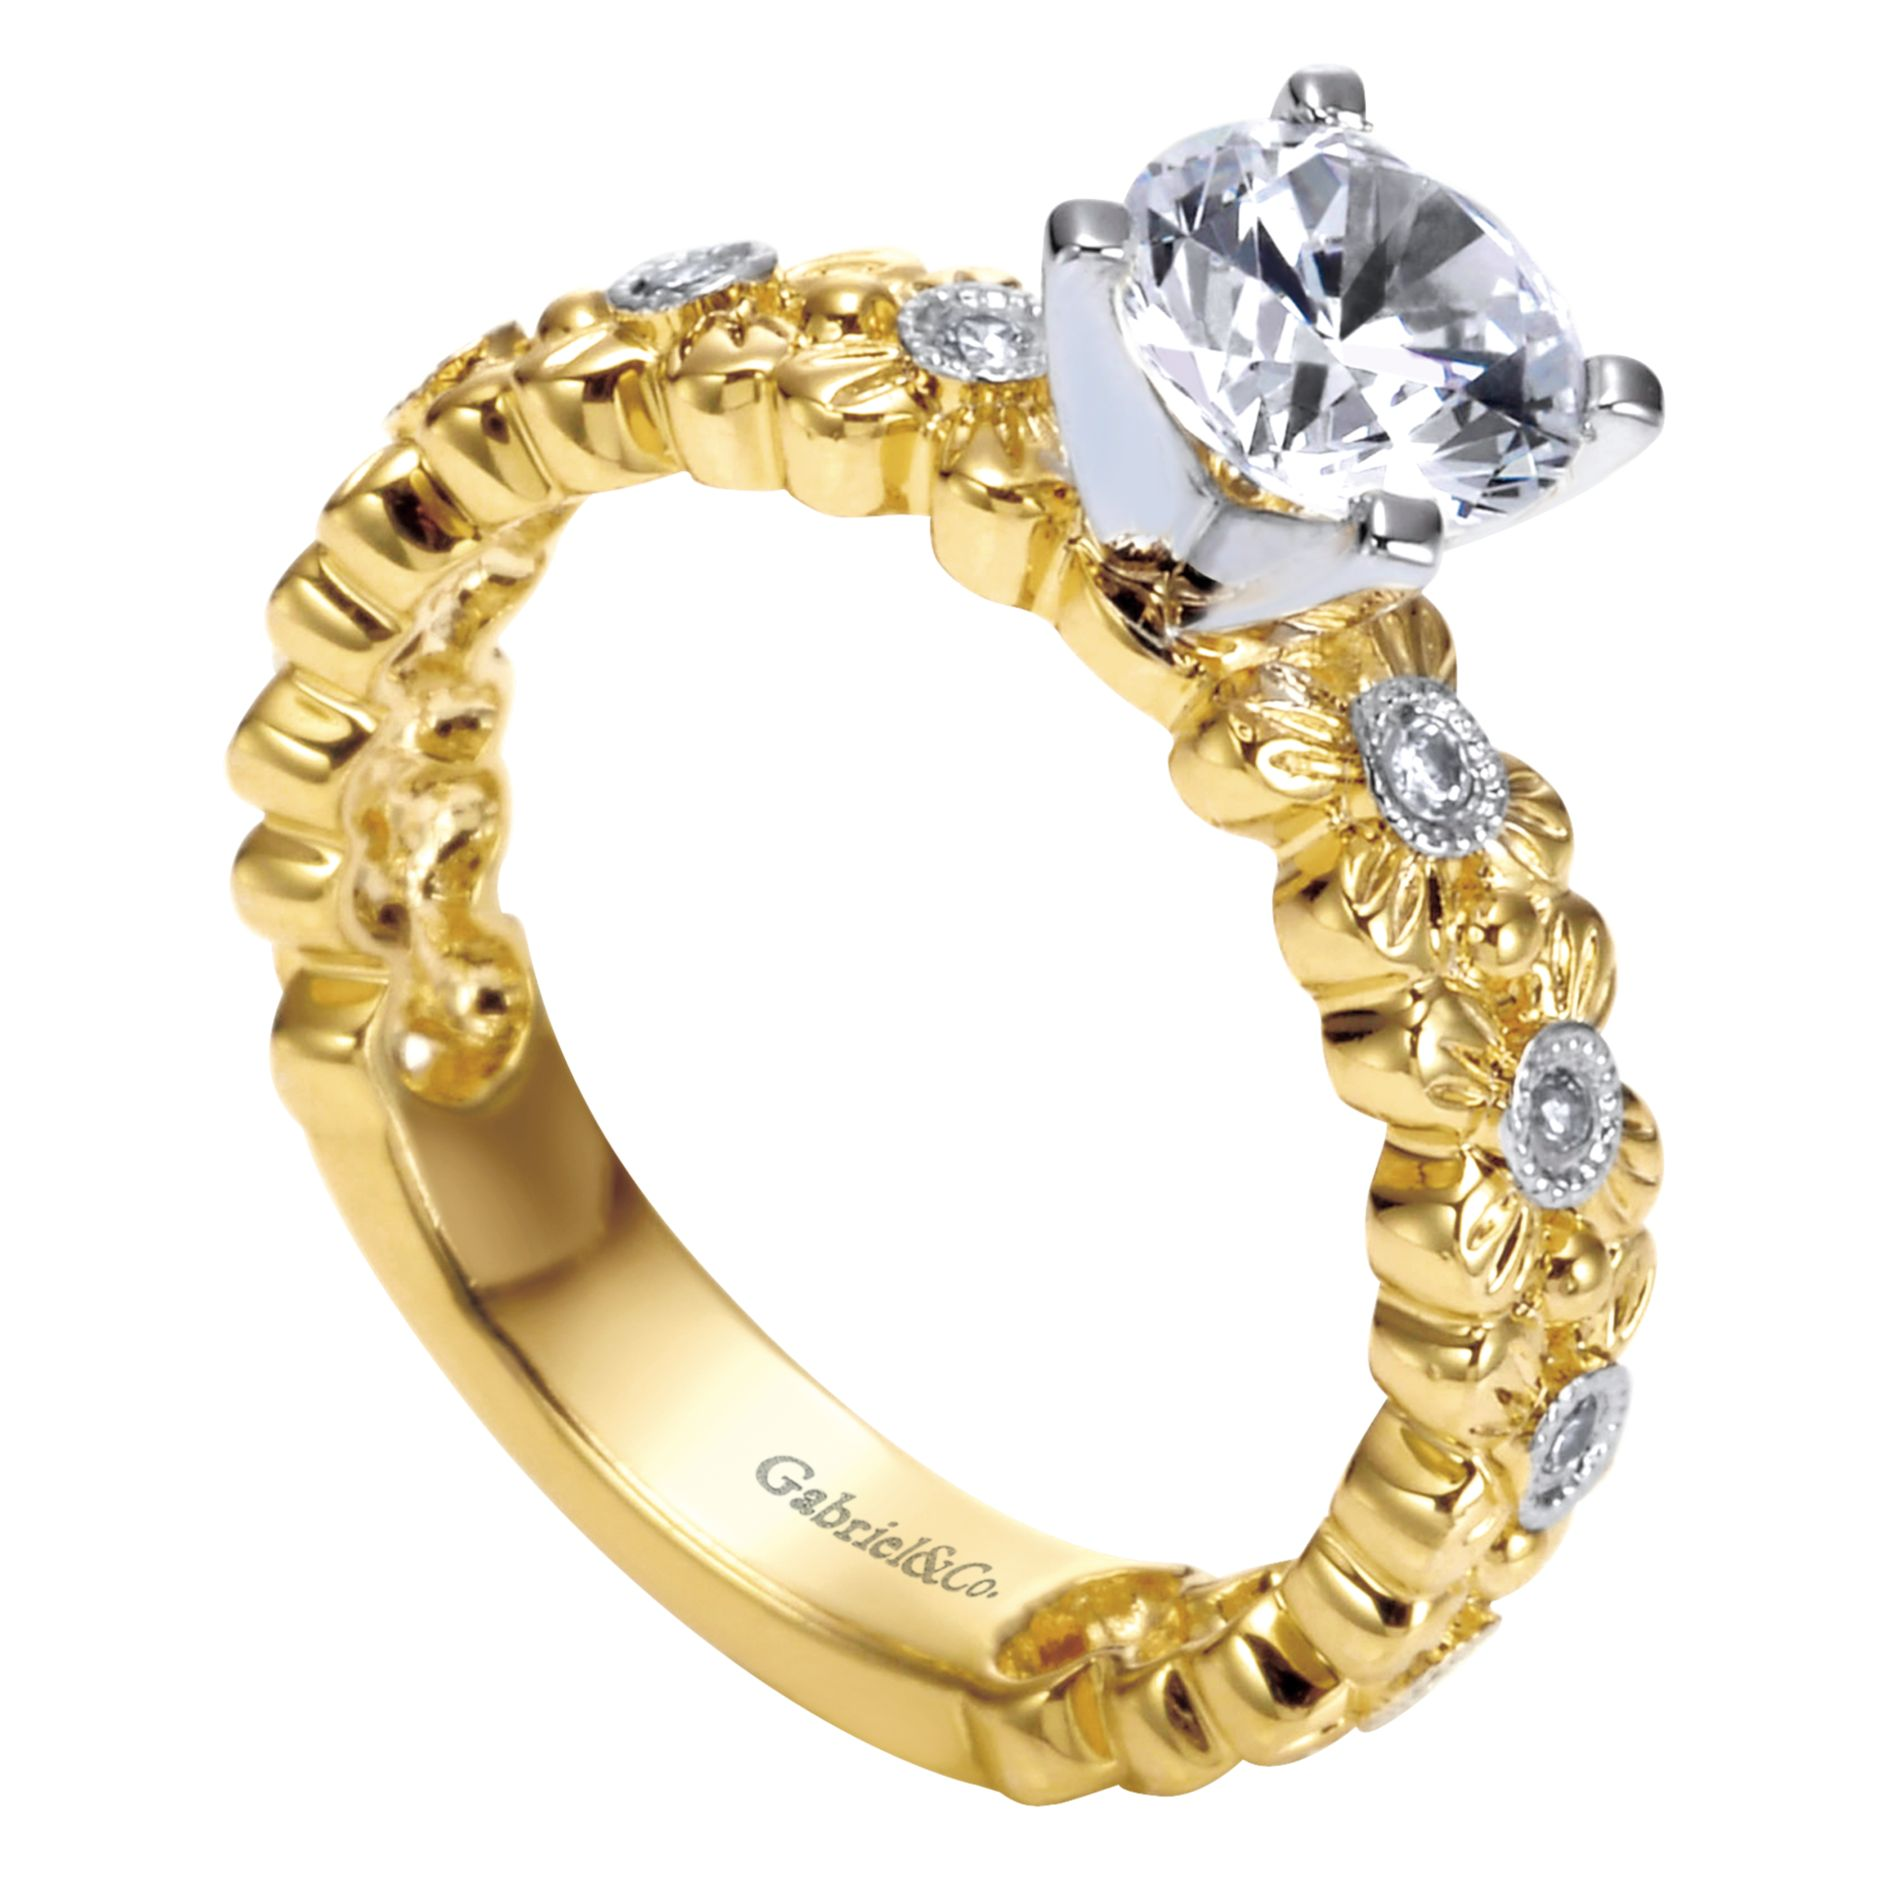 Engagement Rings - YELLOW GOLD ROUND STRAIGHT DIAMOND ENGAGEMENT RING - image #3